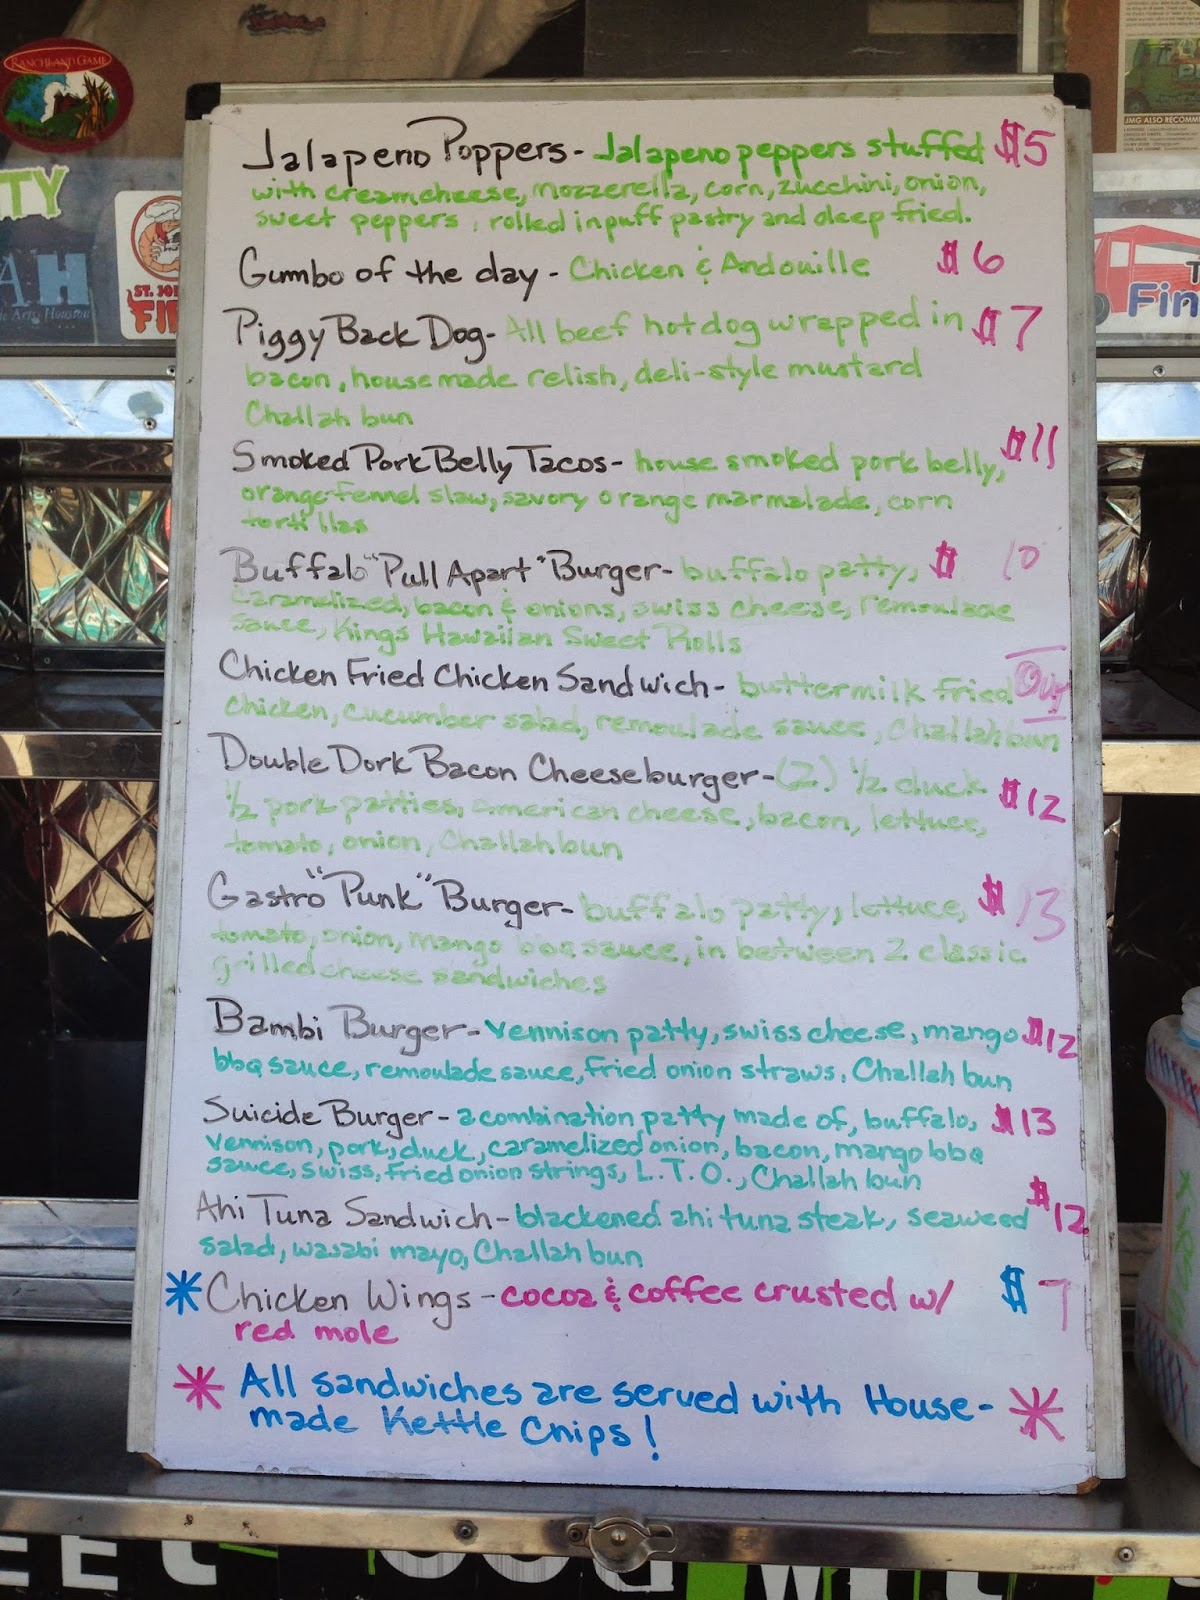 Gastro Punk Food Truck, Houston, TX - Menu